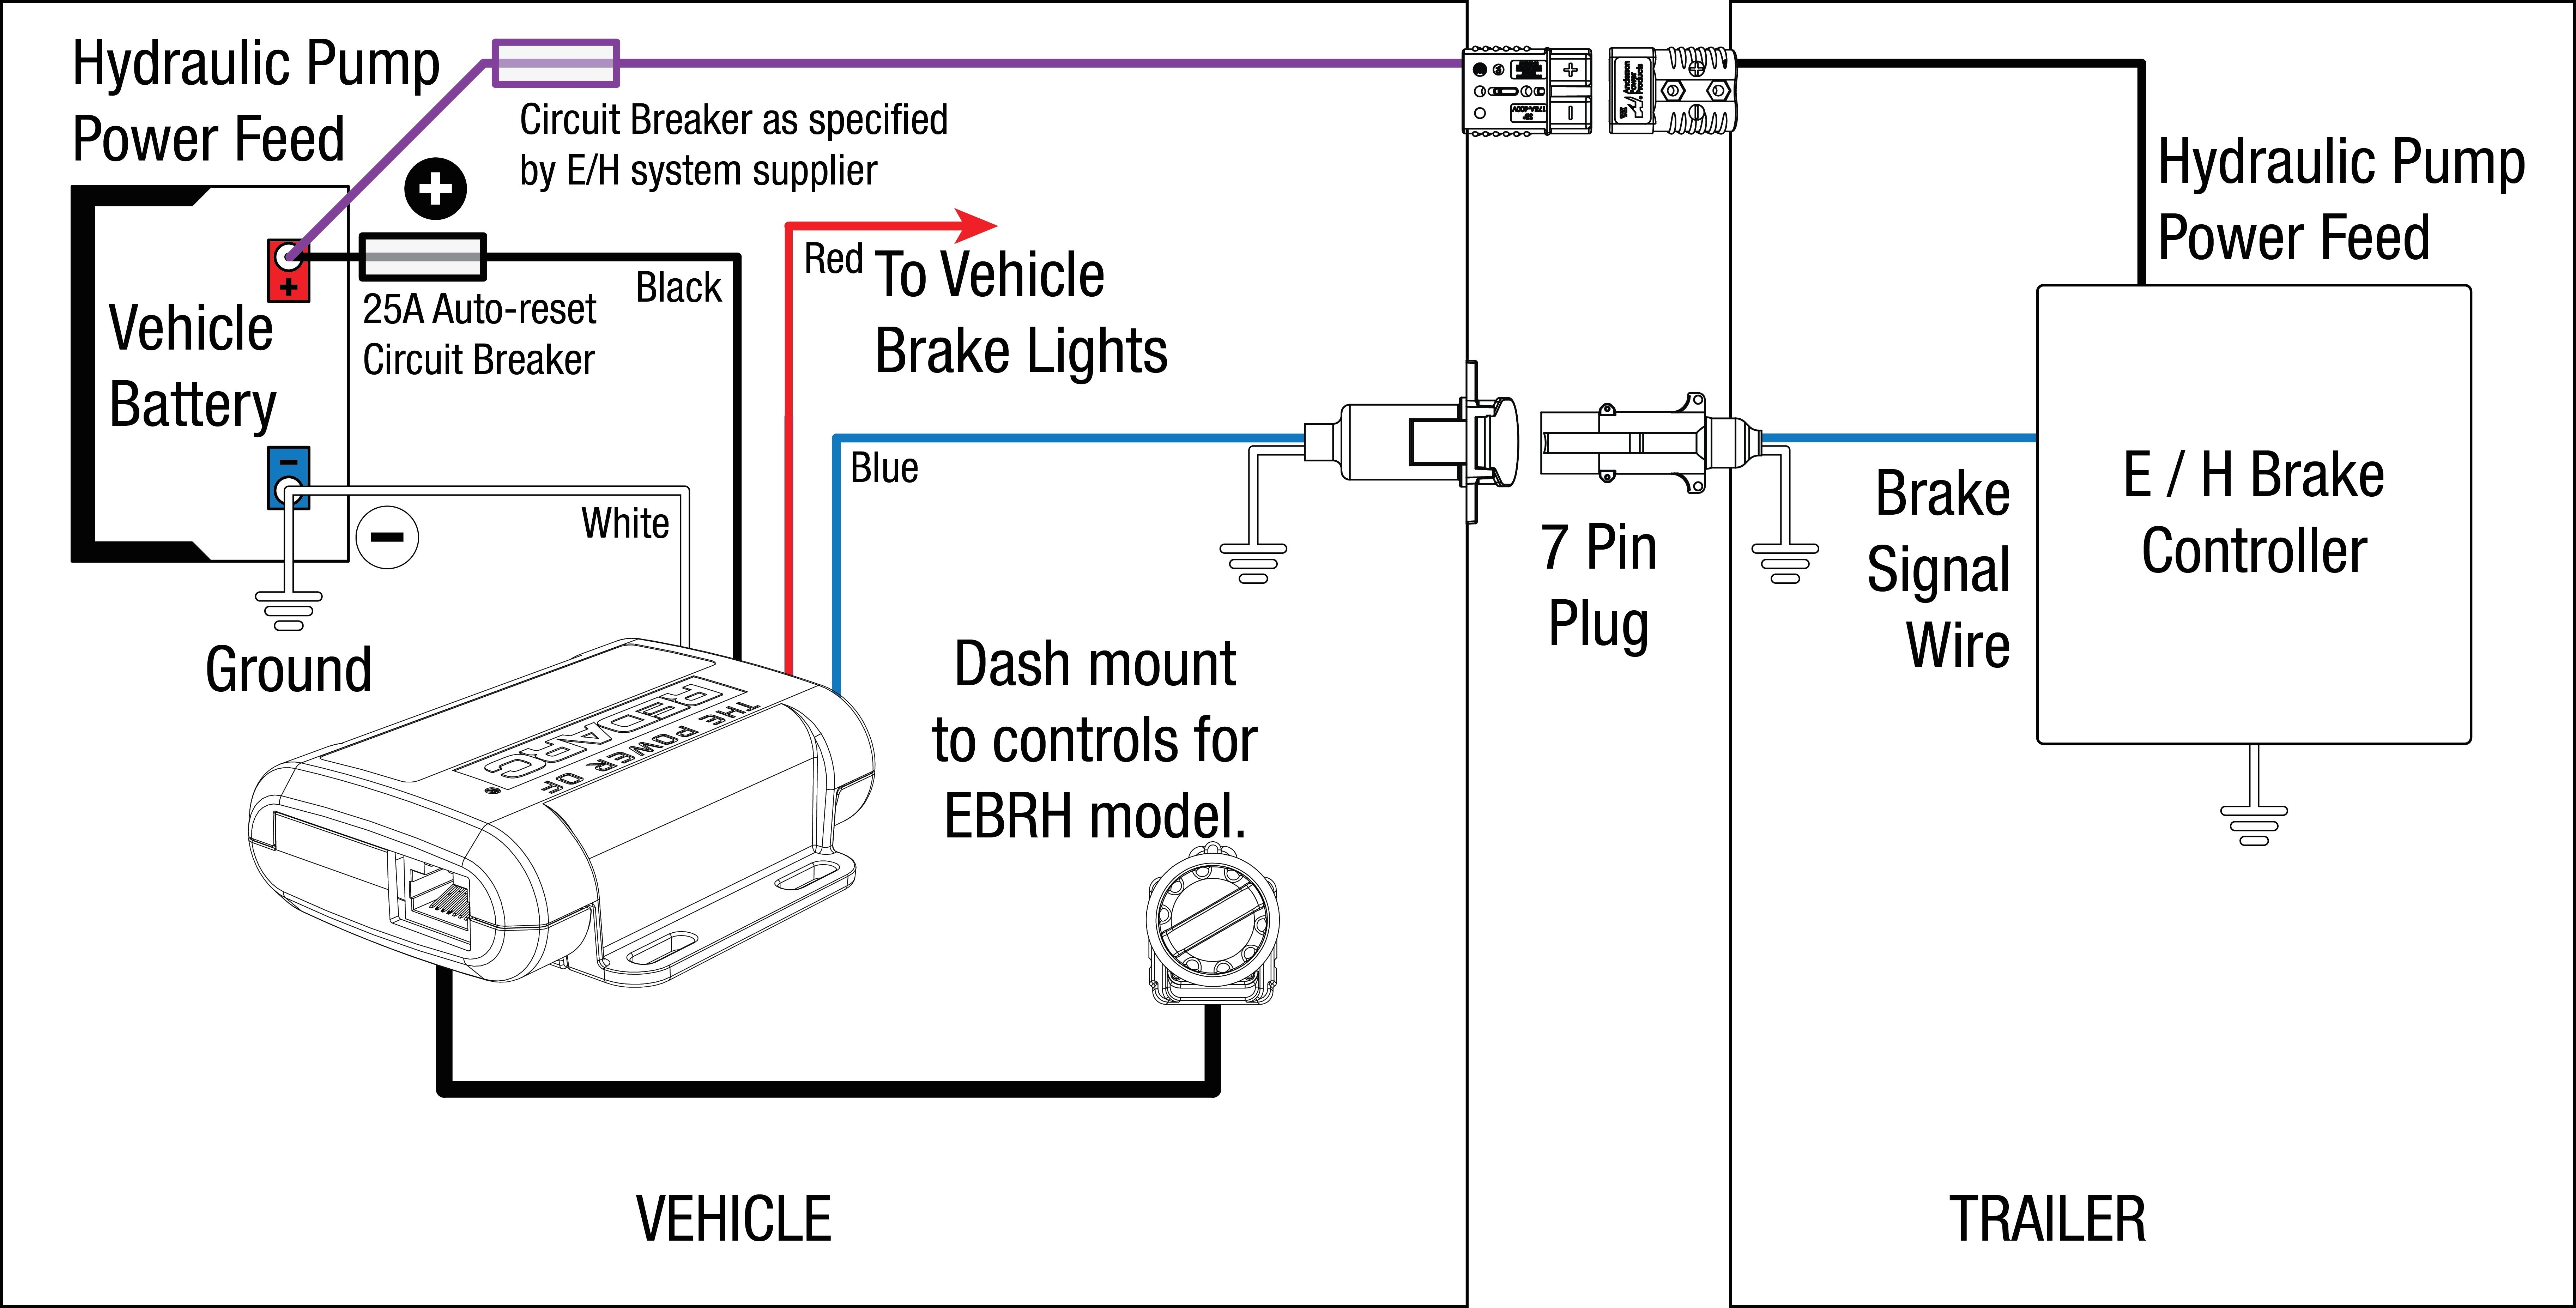 Wiring Diagram For Electric Trailer Brakes New Electric Trailer Brakes Wiring Diagram Wiring Diagram For Electric